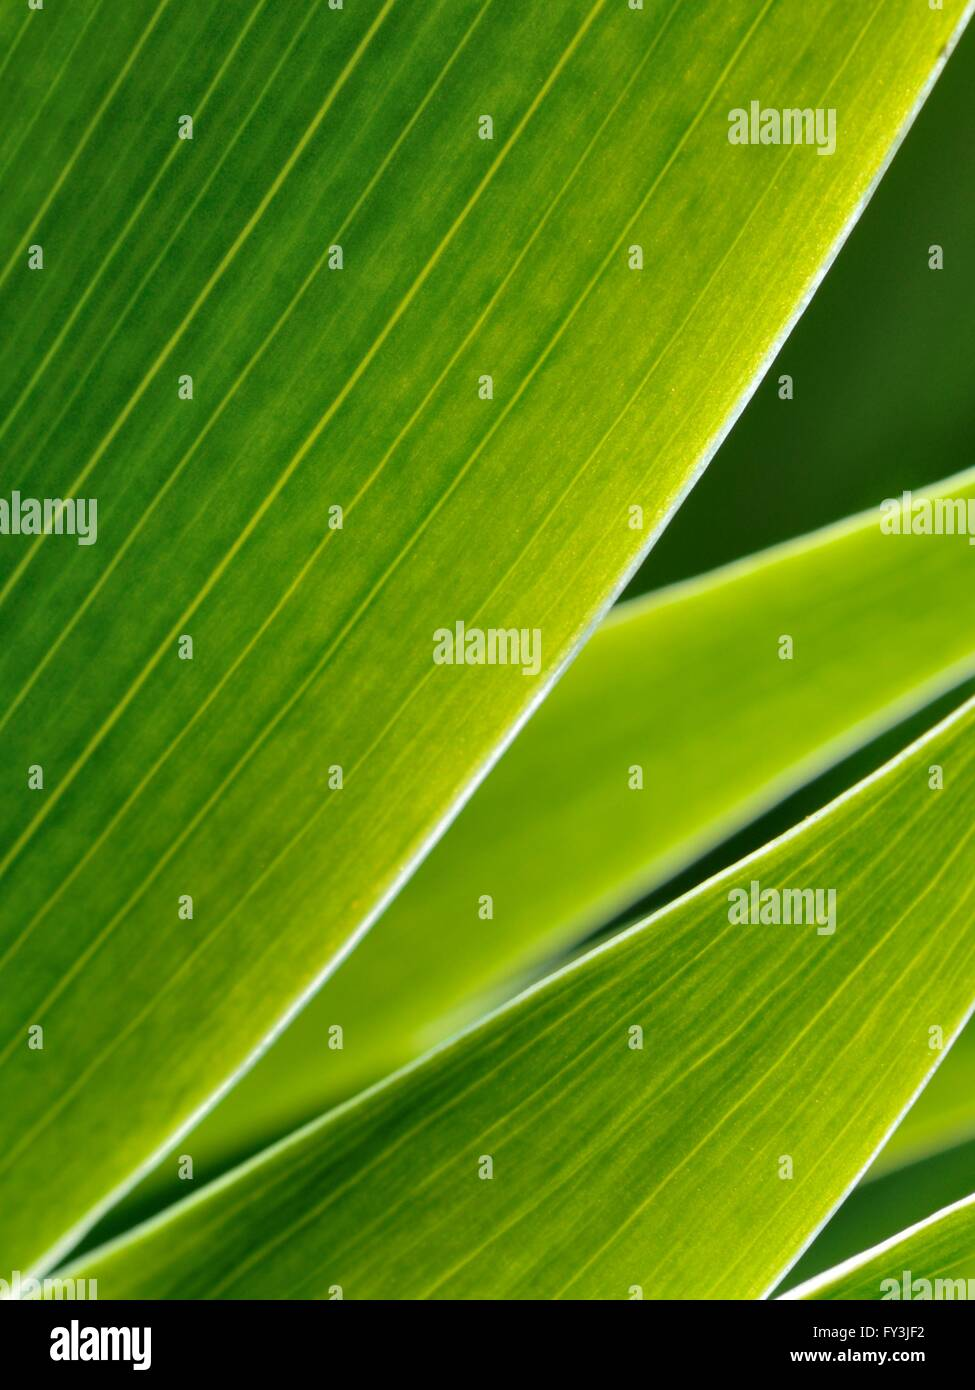 Green Leafs In Abstract Zen Style As Background Stock Photo 102727942 Alamy